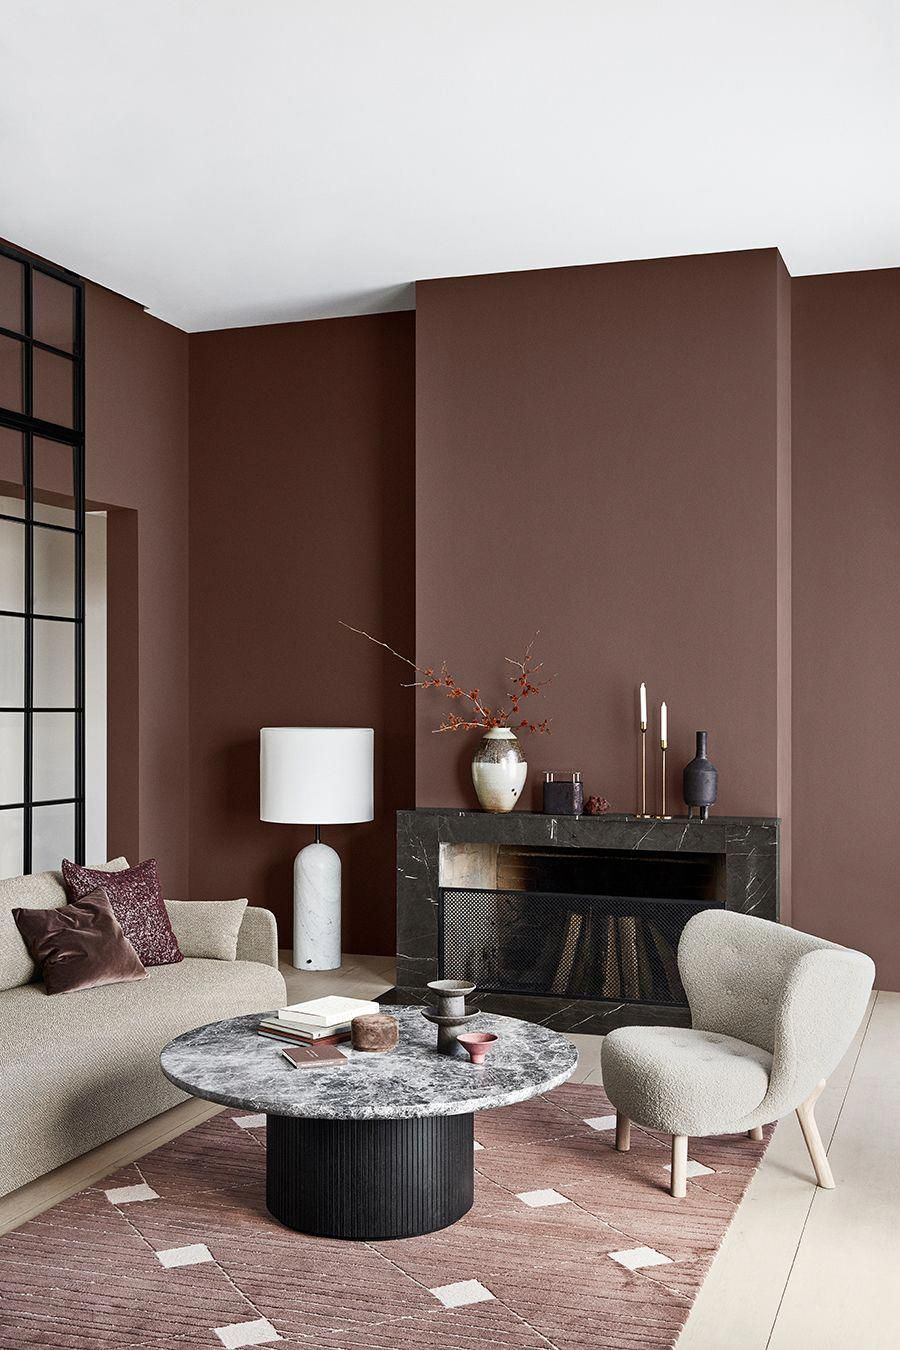 The Scandinavian Interior Colour Trends Of 2020 From Jotun Lady Lady 20142 Daydream A Beauti In 2020 Living Room Color Living Room Colors Living Room Color Schemes